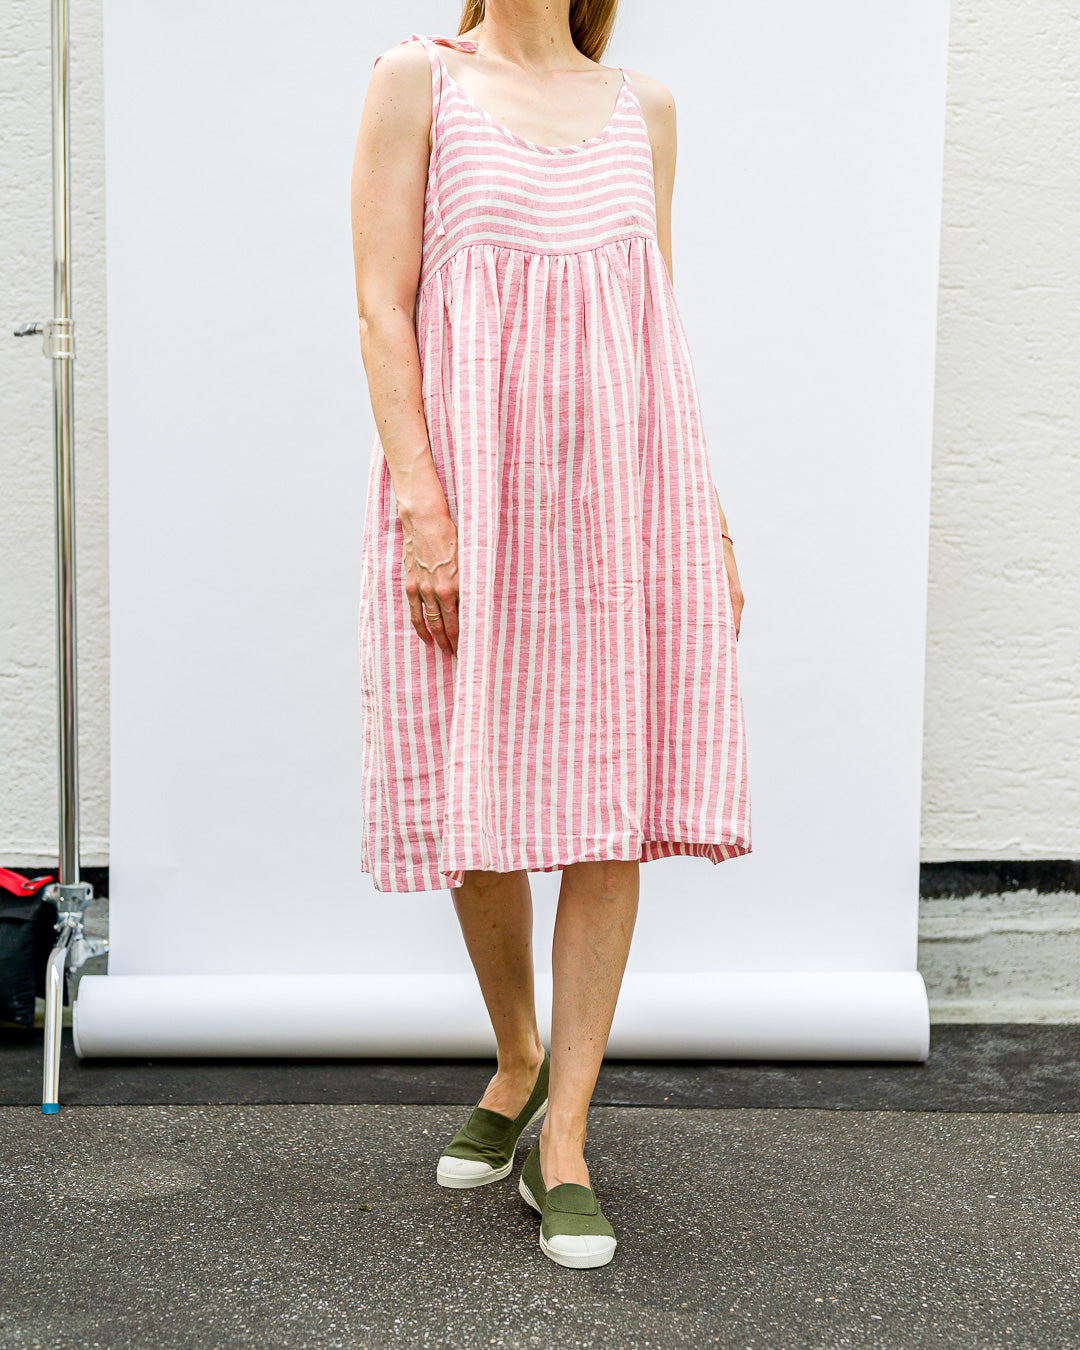 OFFON CLOTHING // Kleidchen Ruffled Stripes Pink White